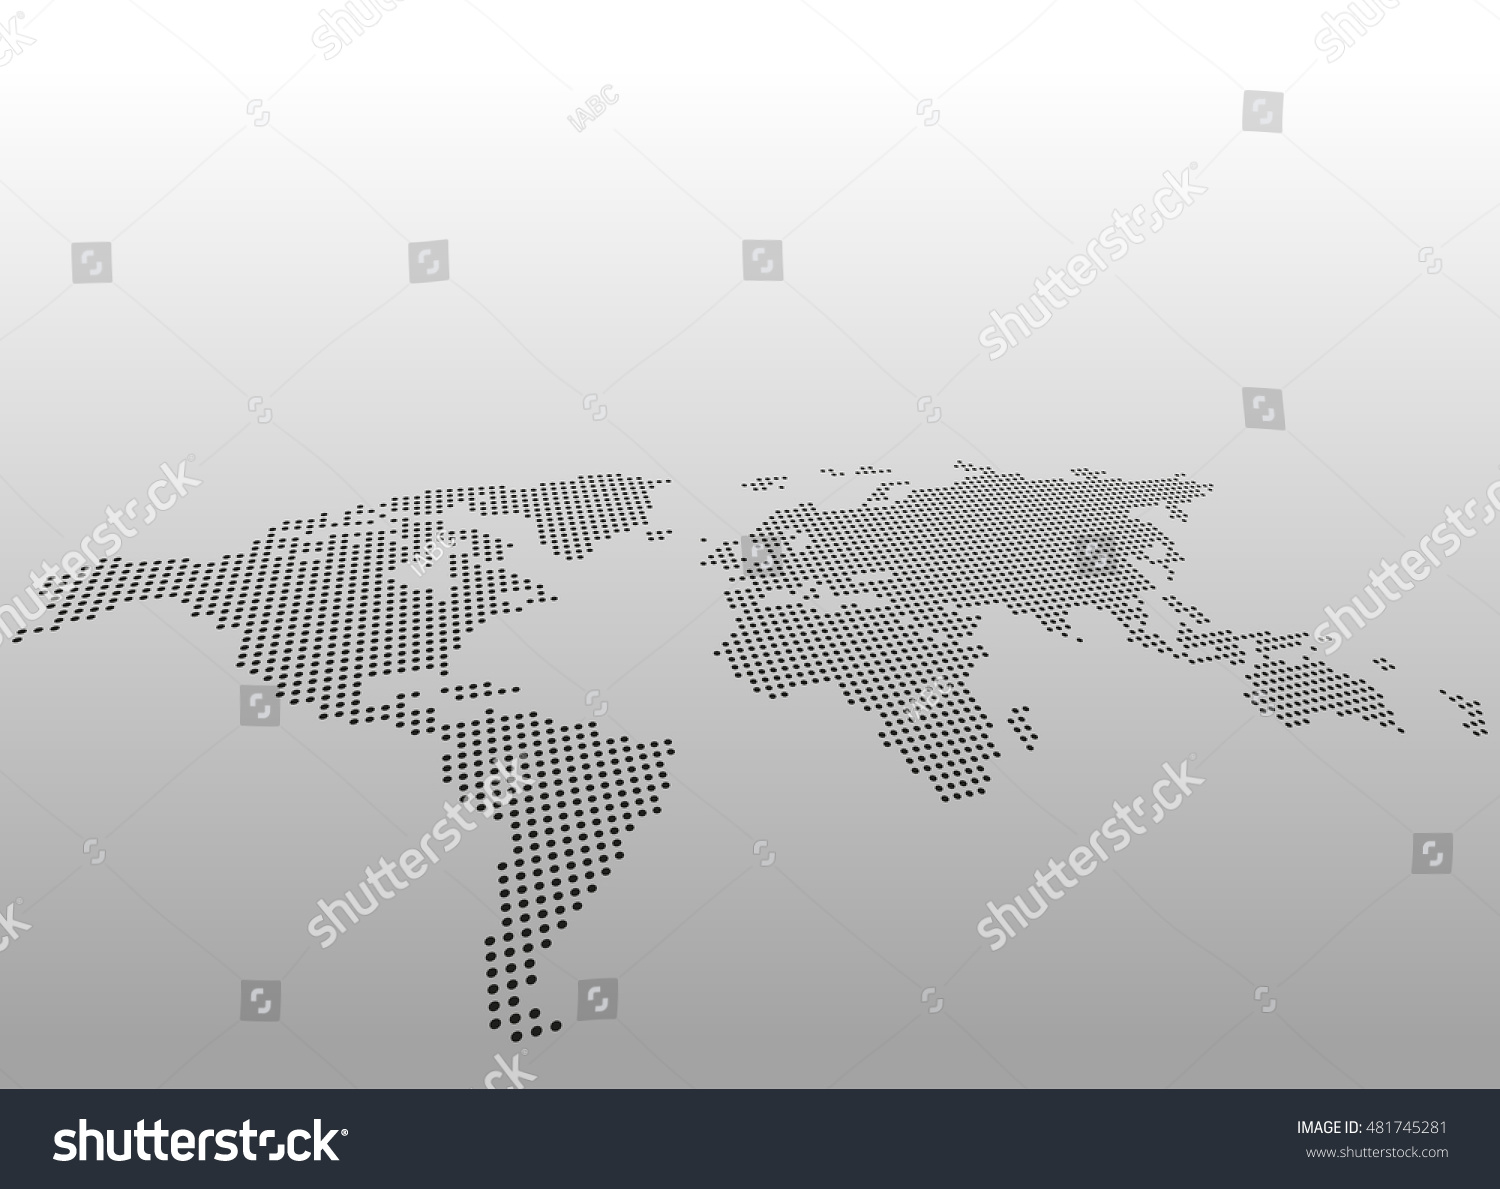 World dotted map vector background asymmetric vectores en stock world dotted map vector background asymmetric perspective view gumiabroncs Choice Image